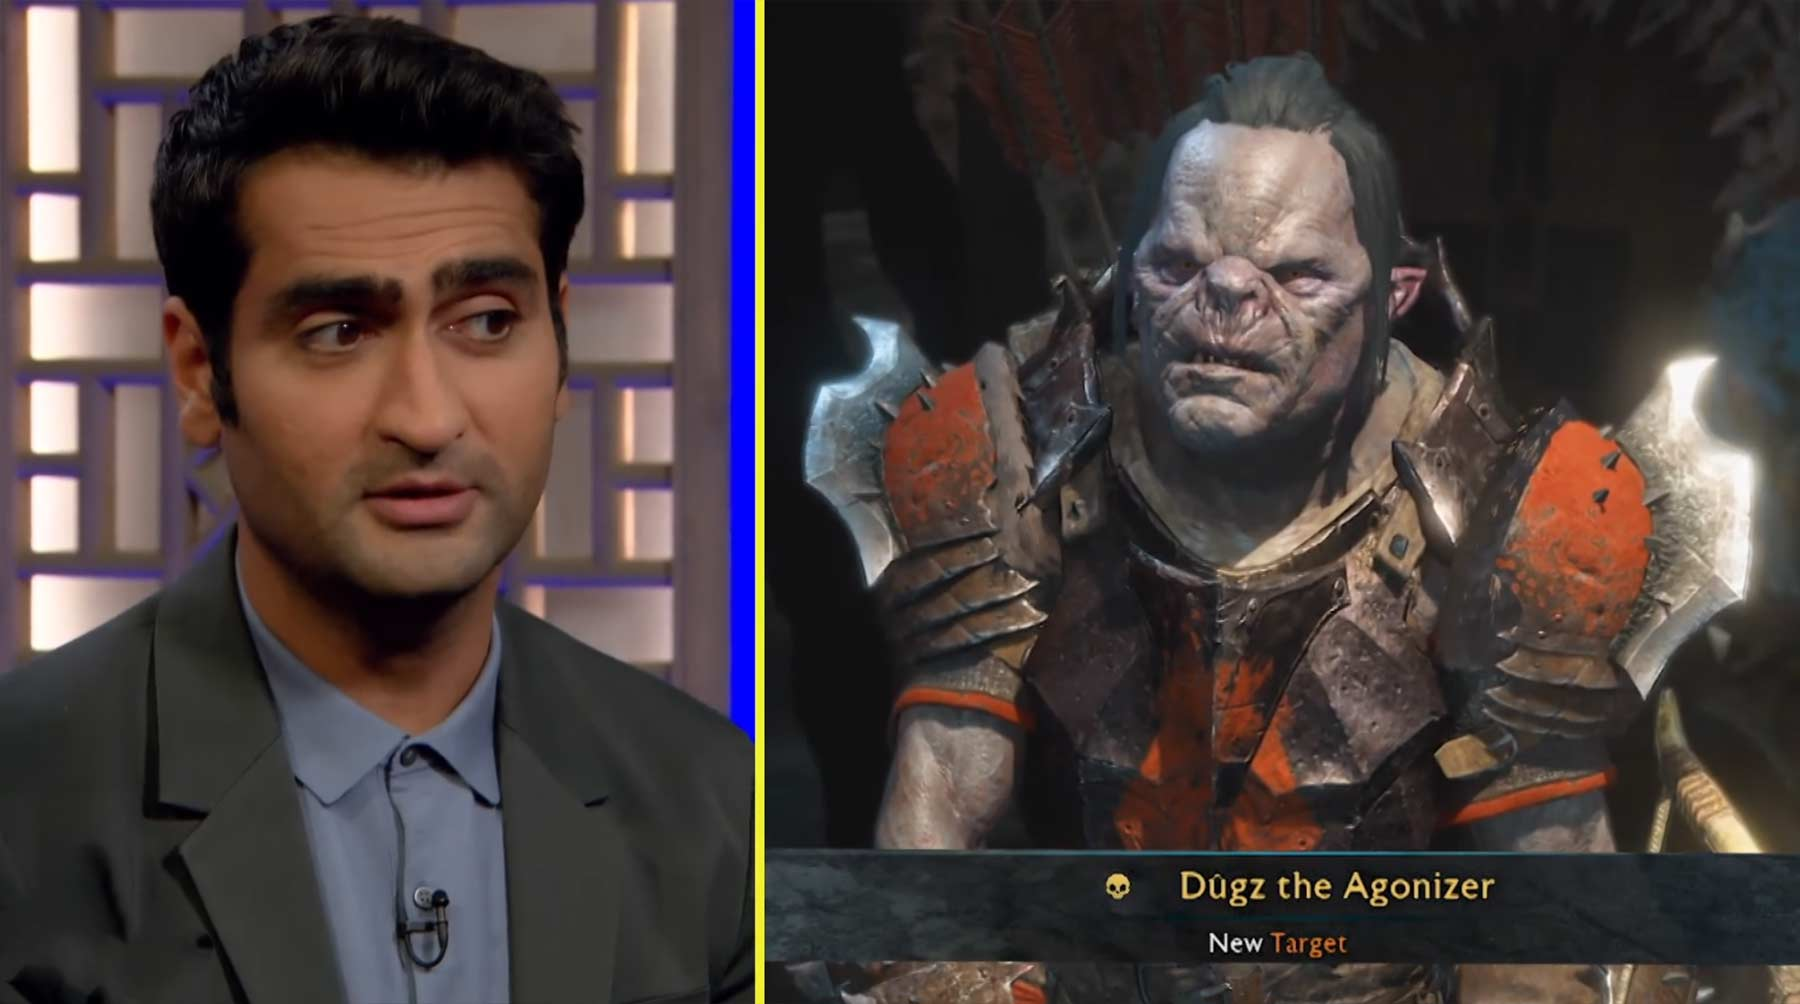 Conan spielt Shadow of War mit Kumail Nanjiani clueless-gamer-shadow-of-war-Kumail-Nanjiani